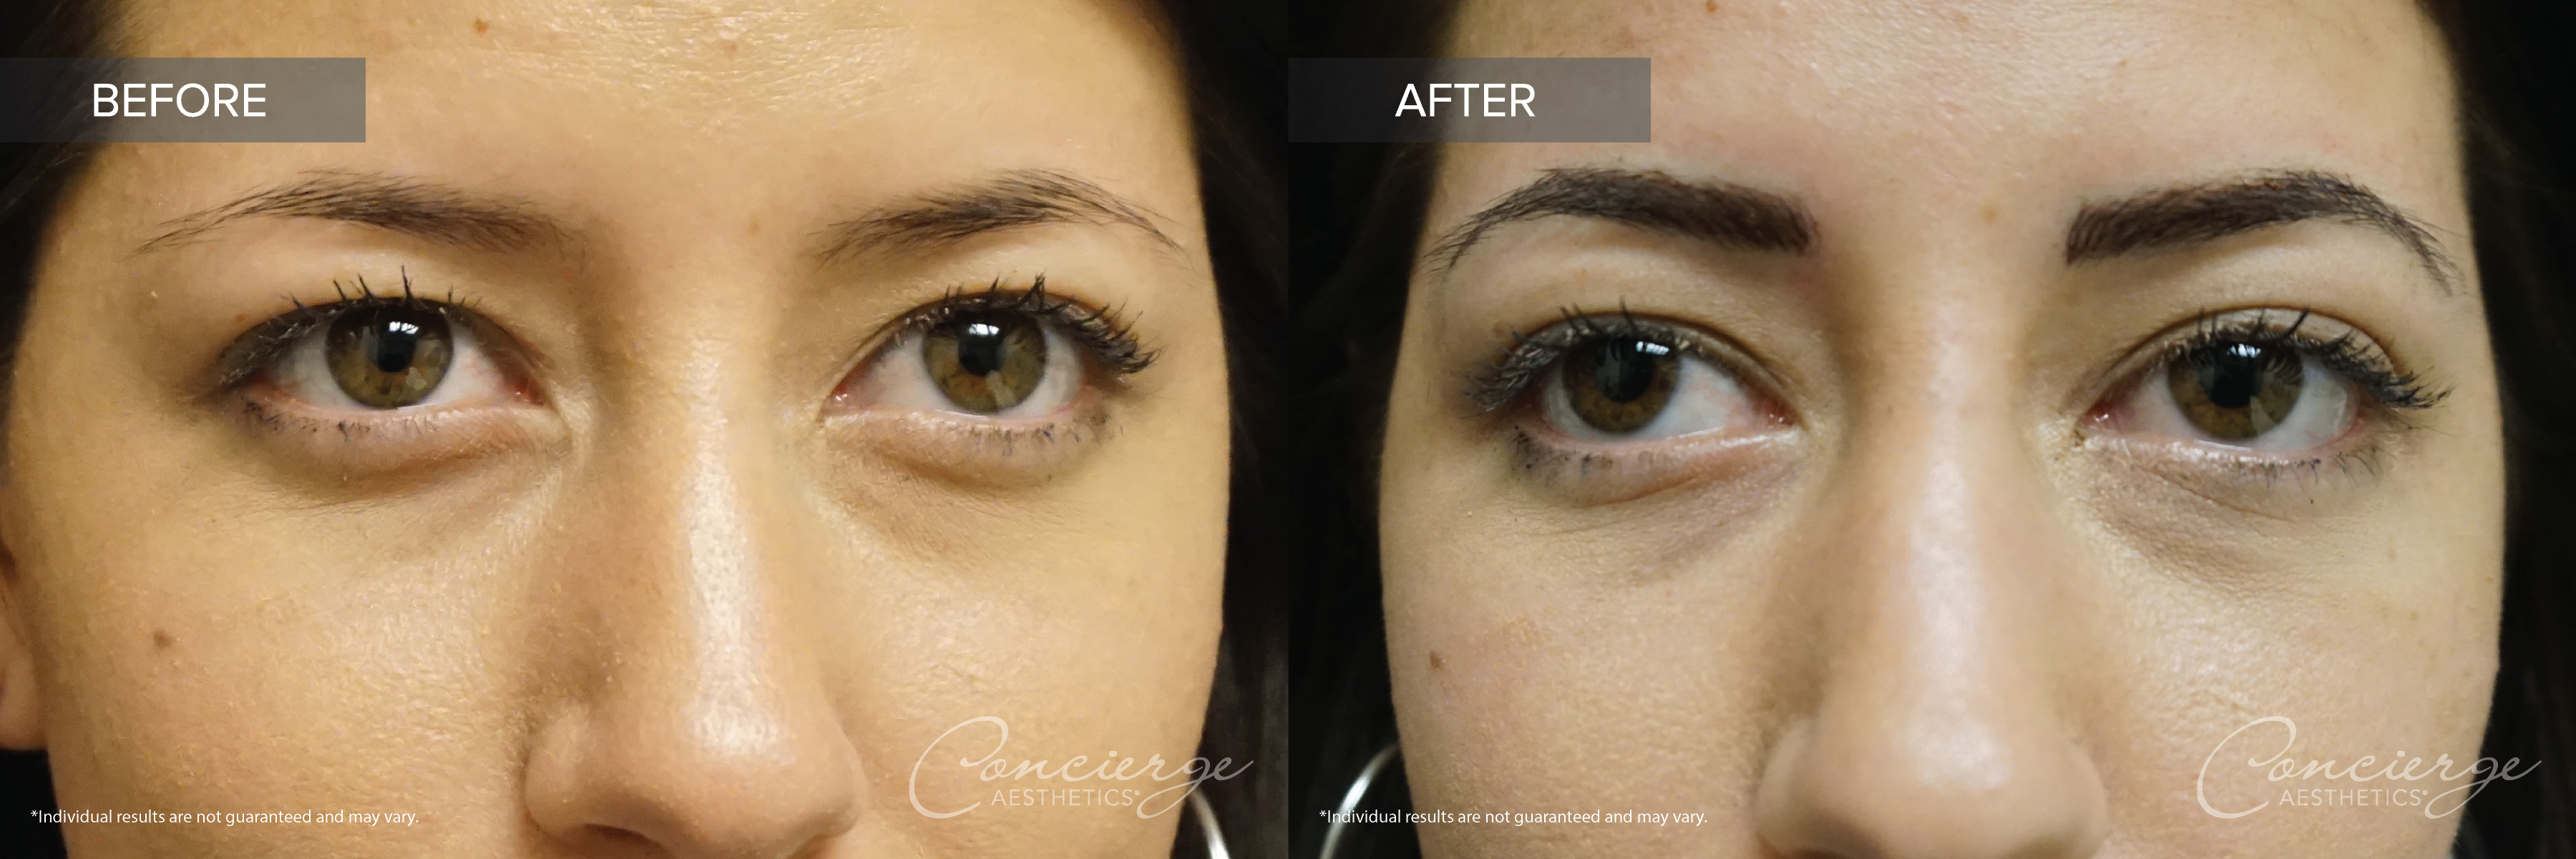 Microblading - Before and After Photos